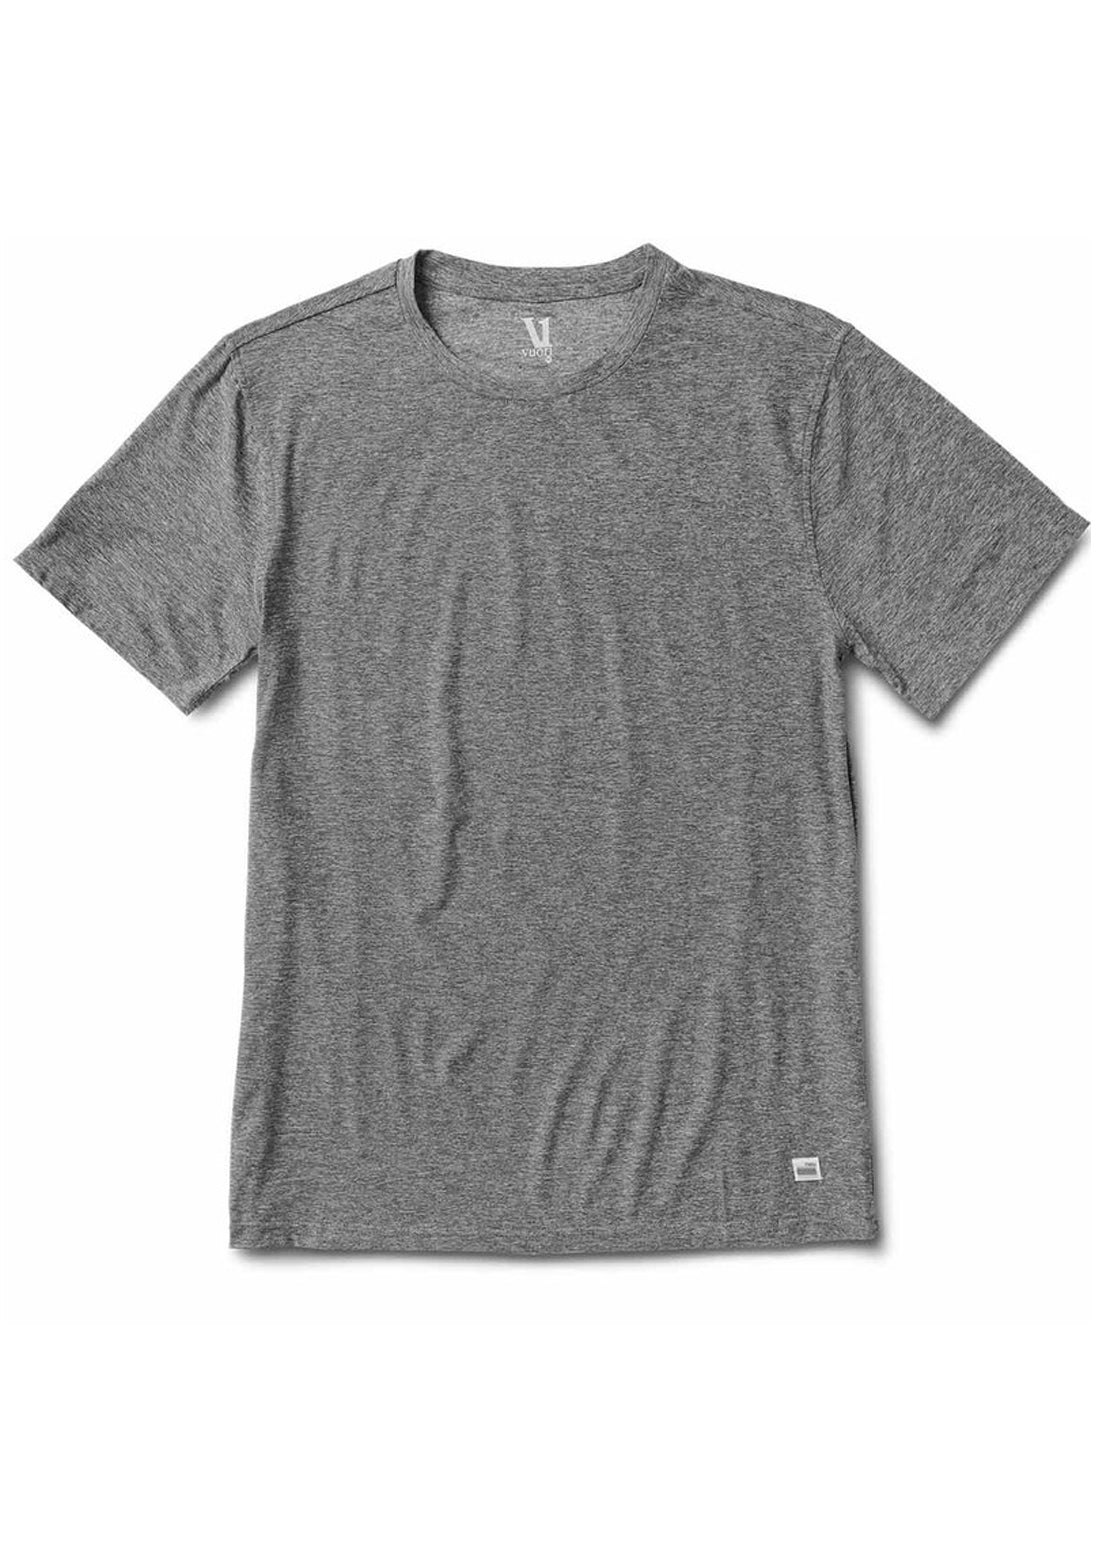 Vuori Men's Strato Tech T-Shirt Heather Grey